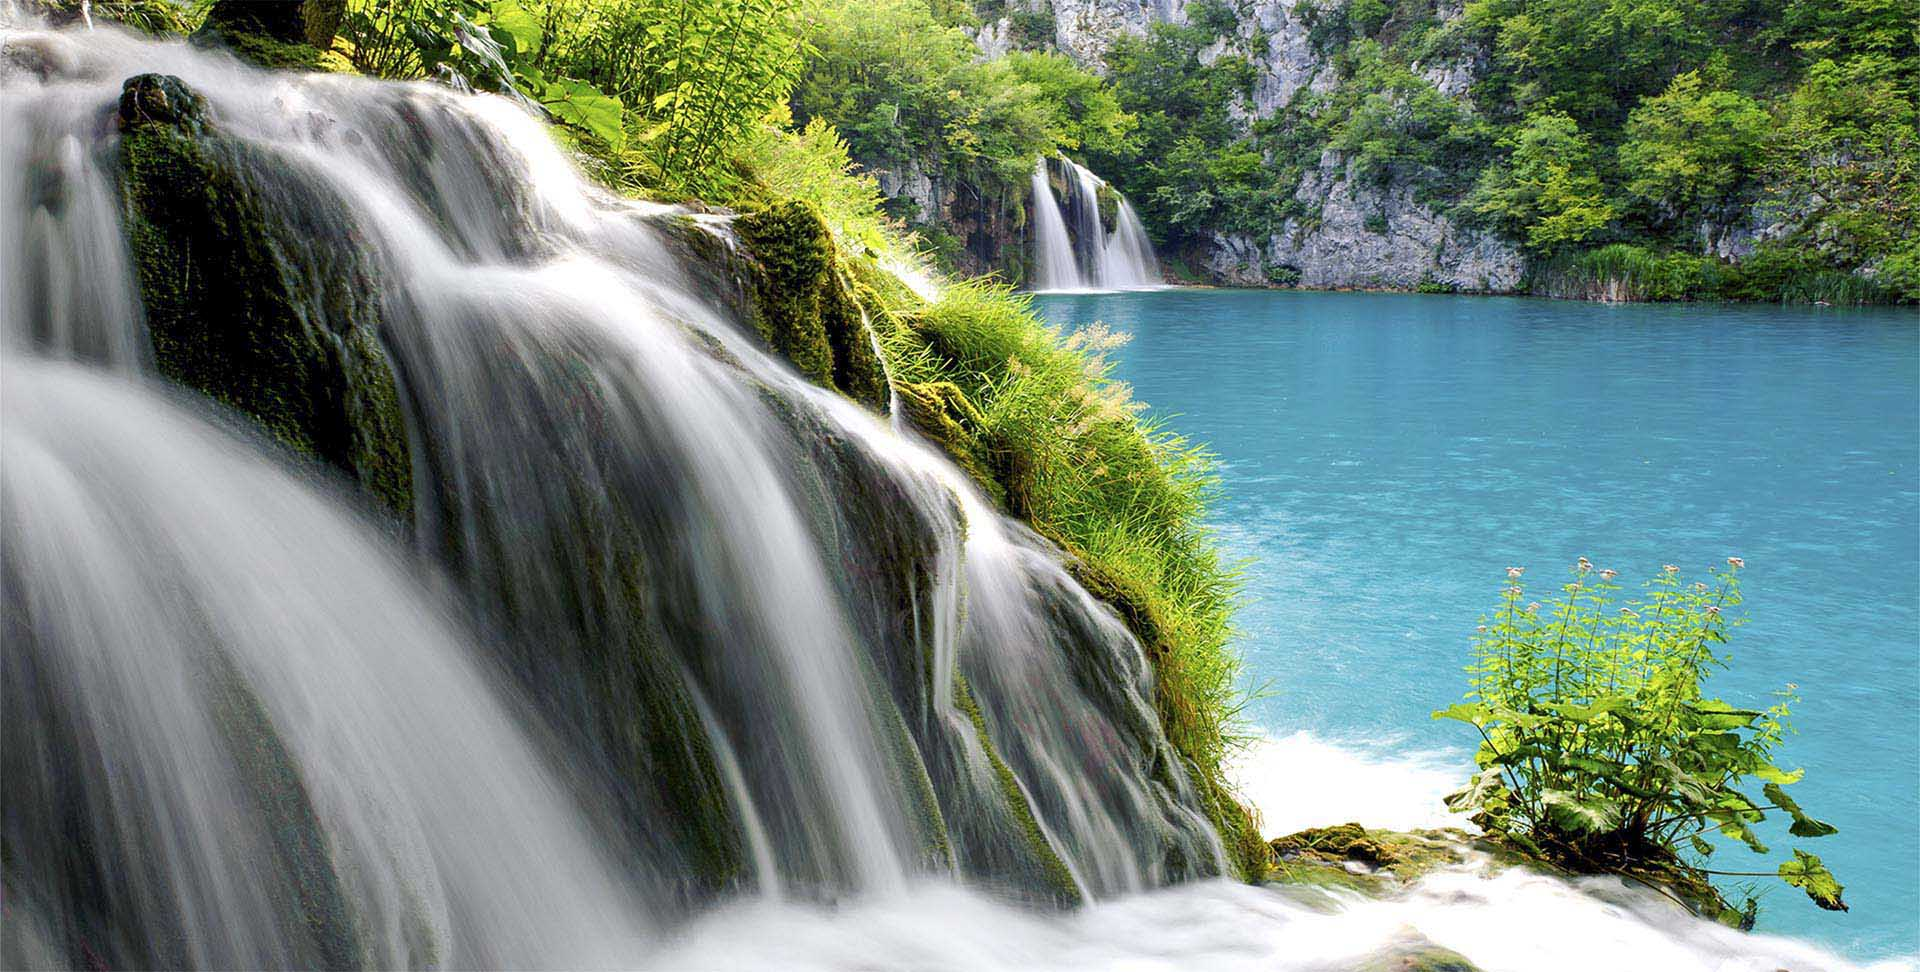 Croatia National Park Plitvice Lakes Waterfall